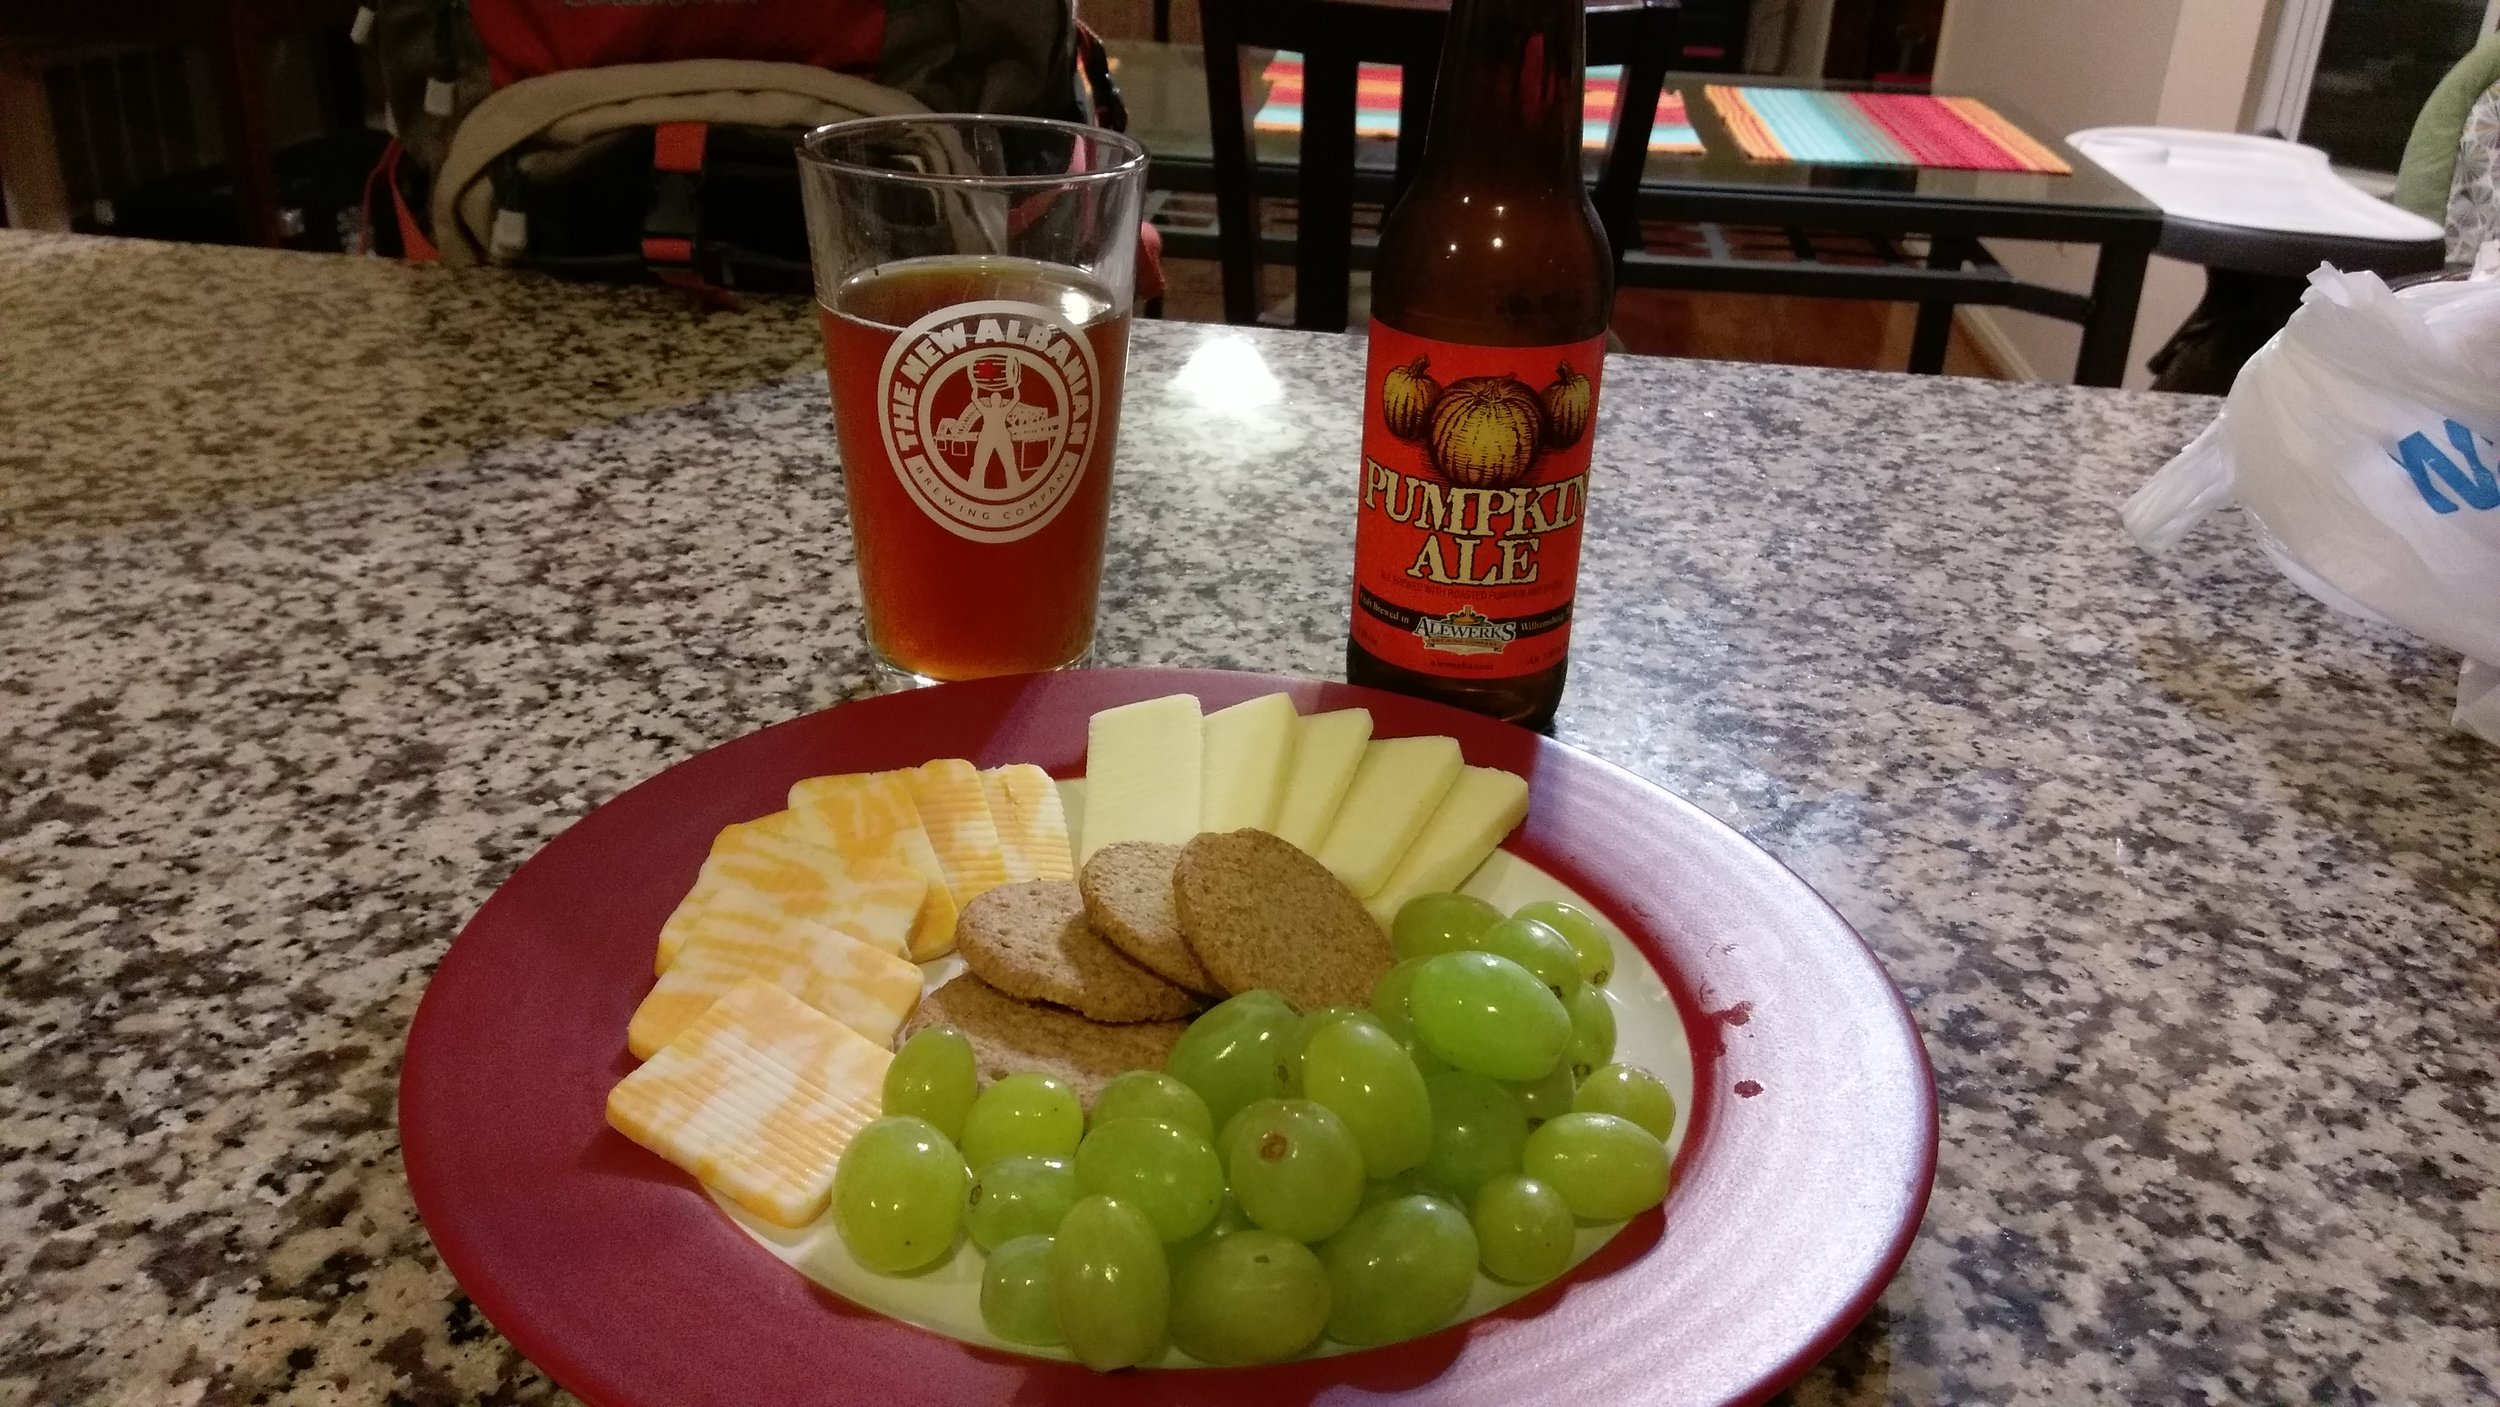 Healthy snack and a beer